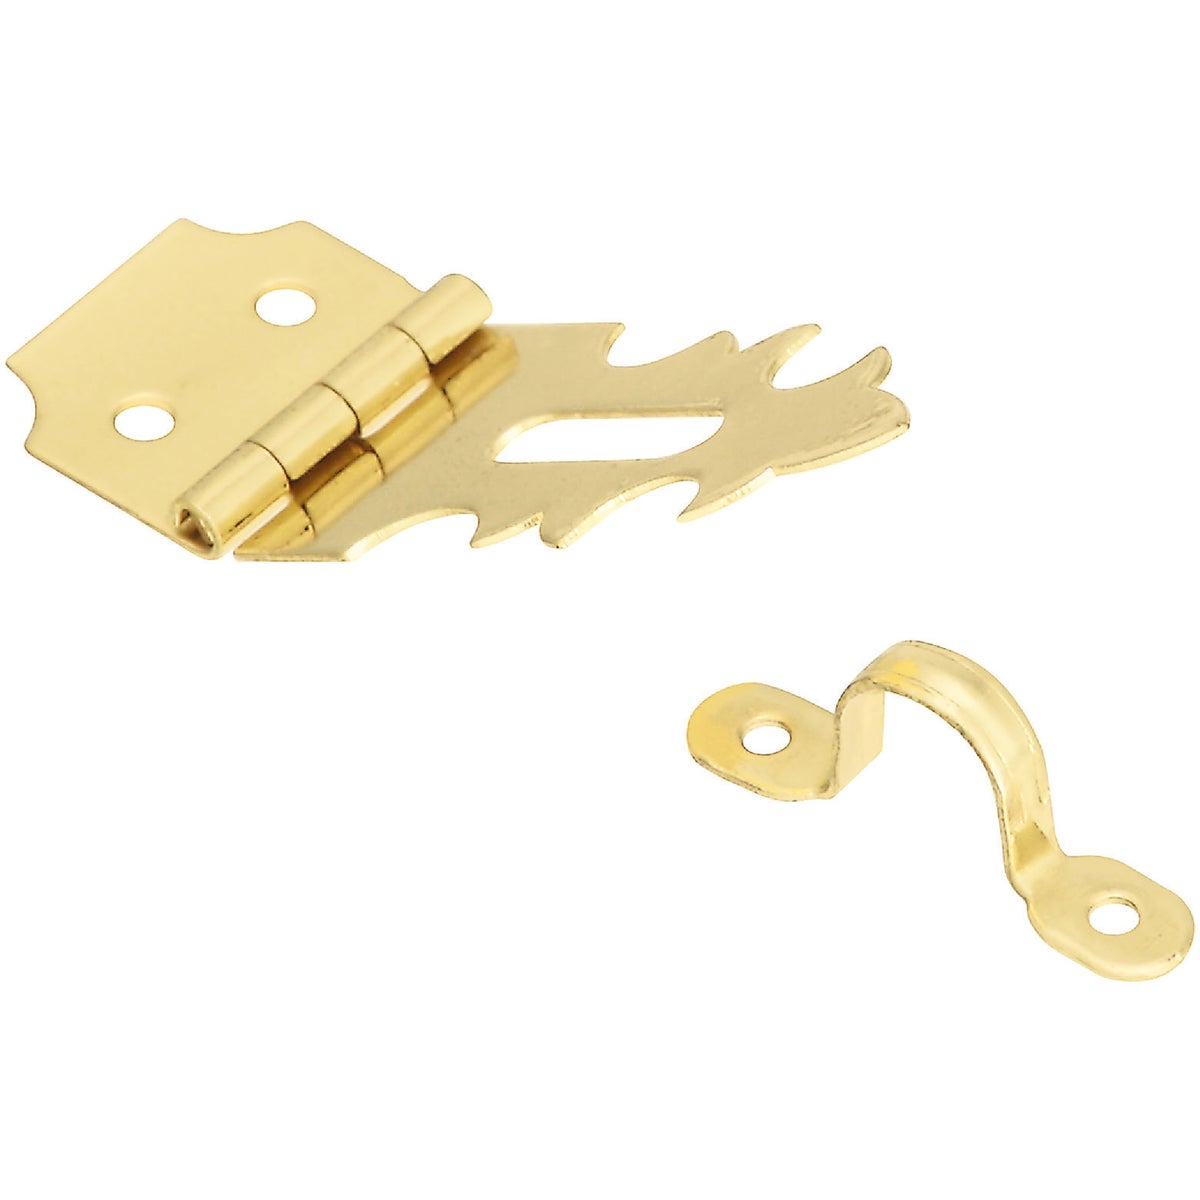 3/4X2-3/4 SB HASP/HOOK - N211912 by National Mfg Co